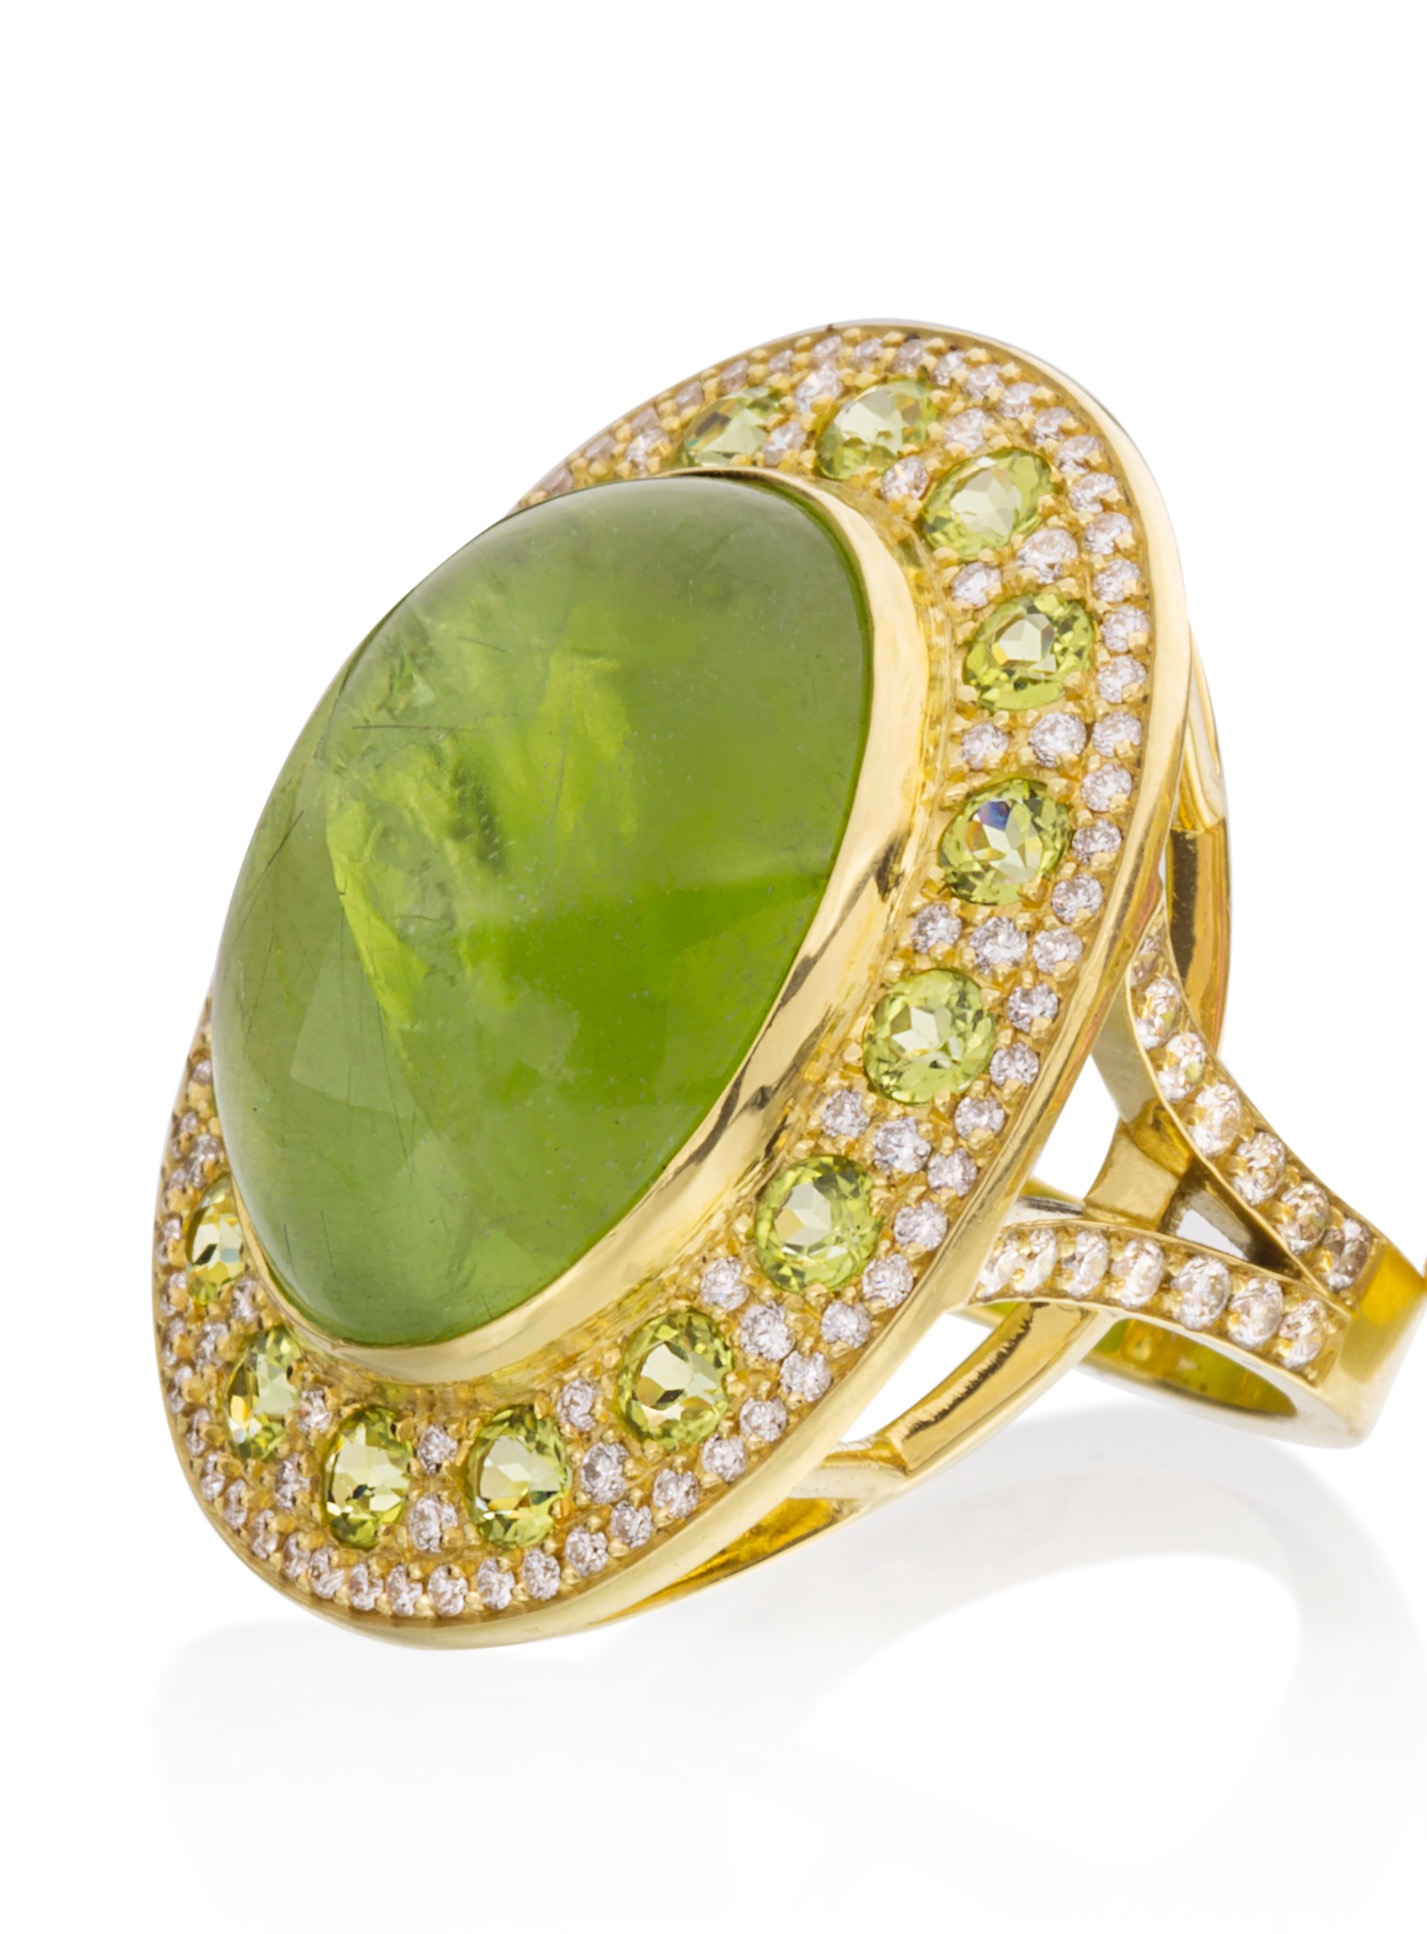 Lauren K cabochon peridot Diva ring | JCK On Your Market